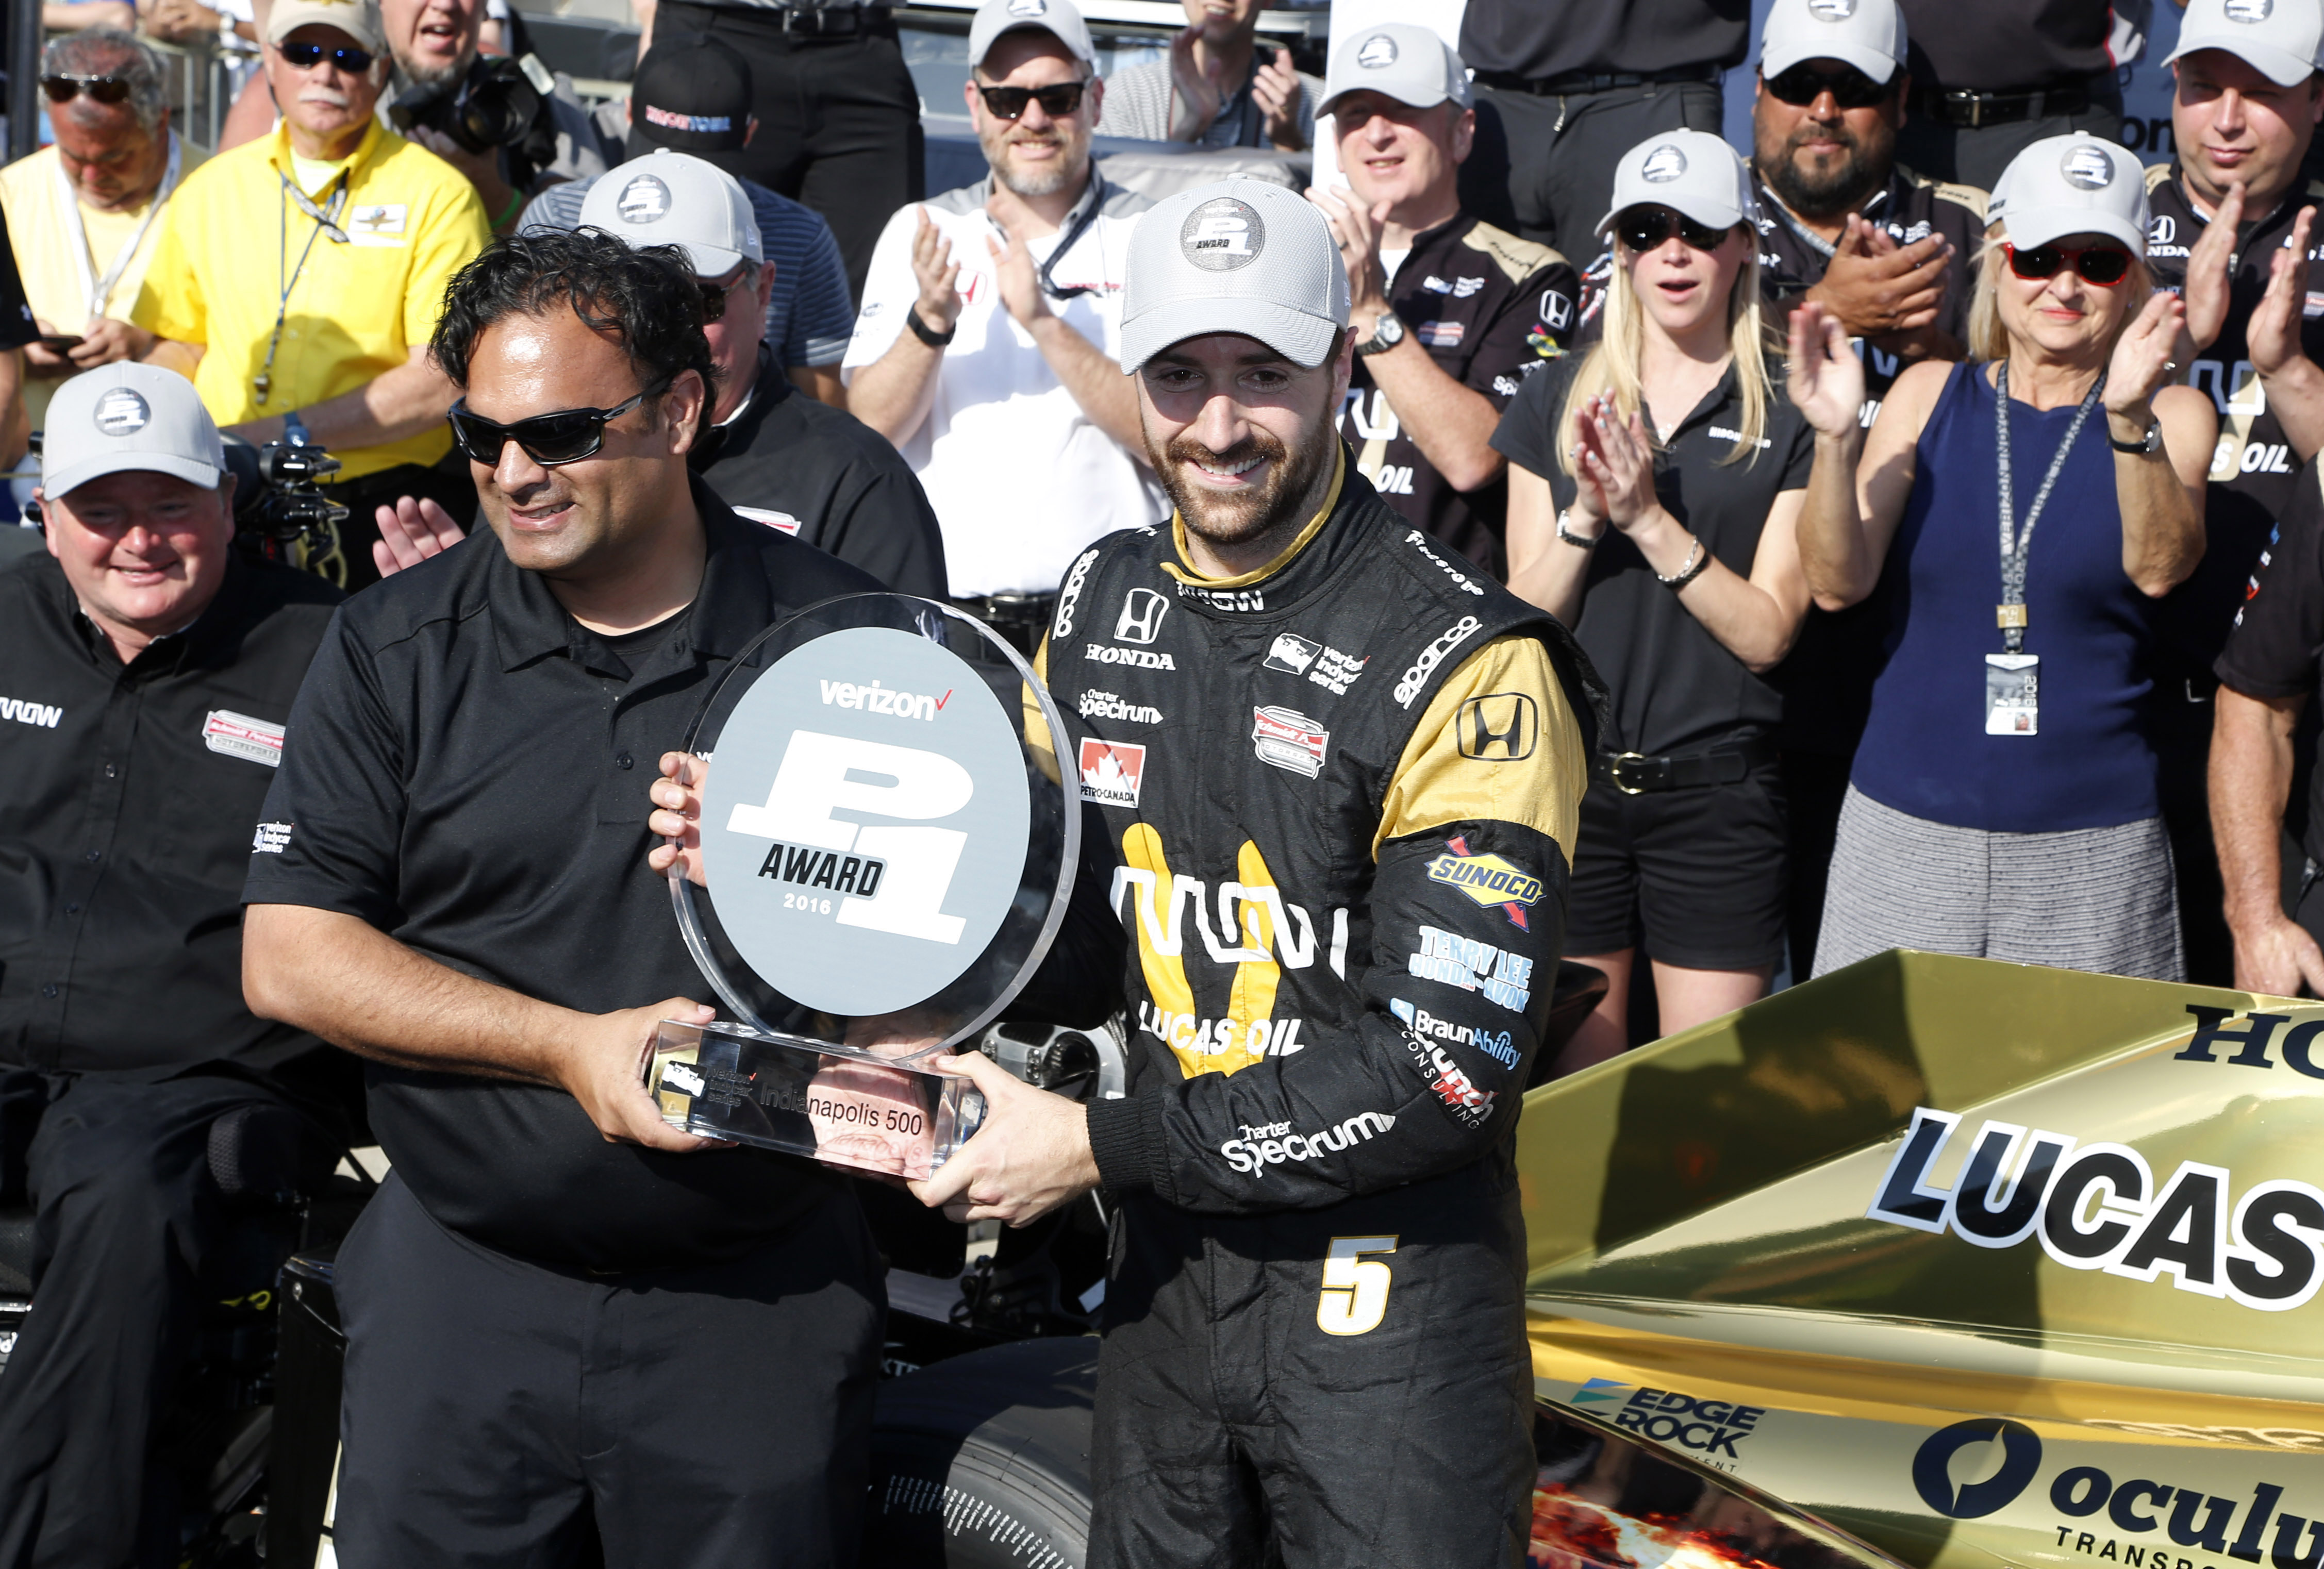 James Hichcliffe Claims Indy 500 Pole